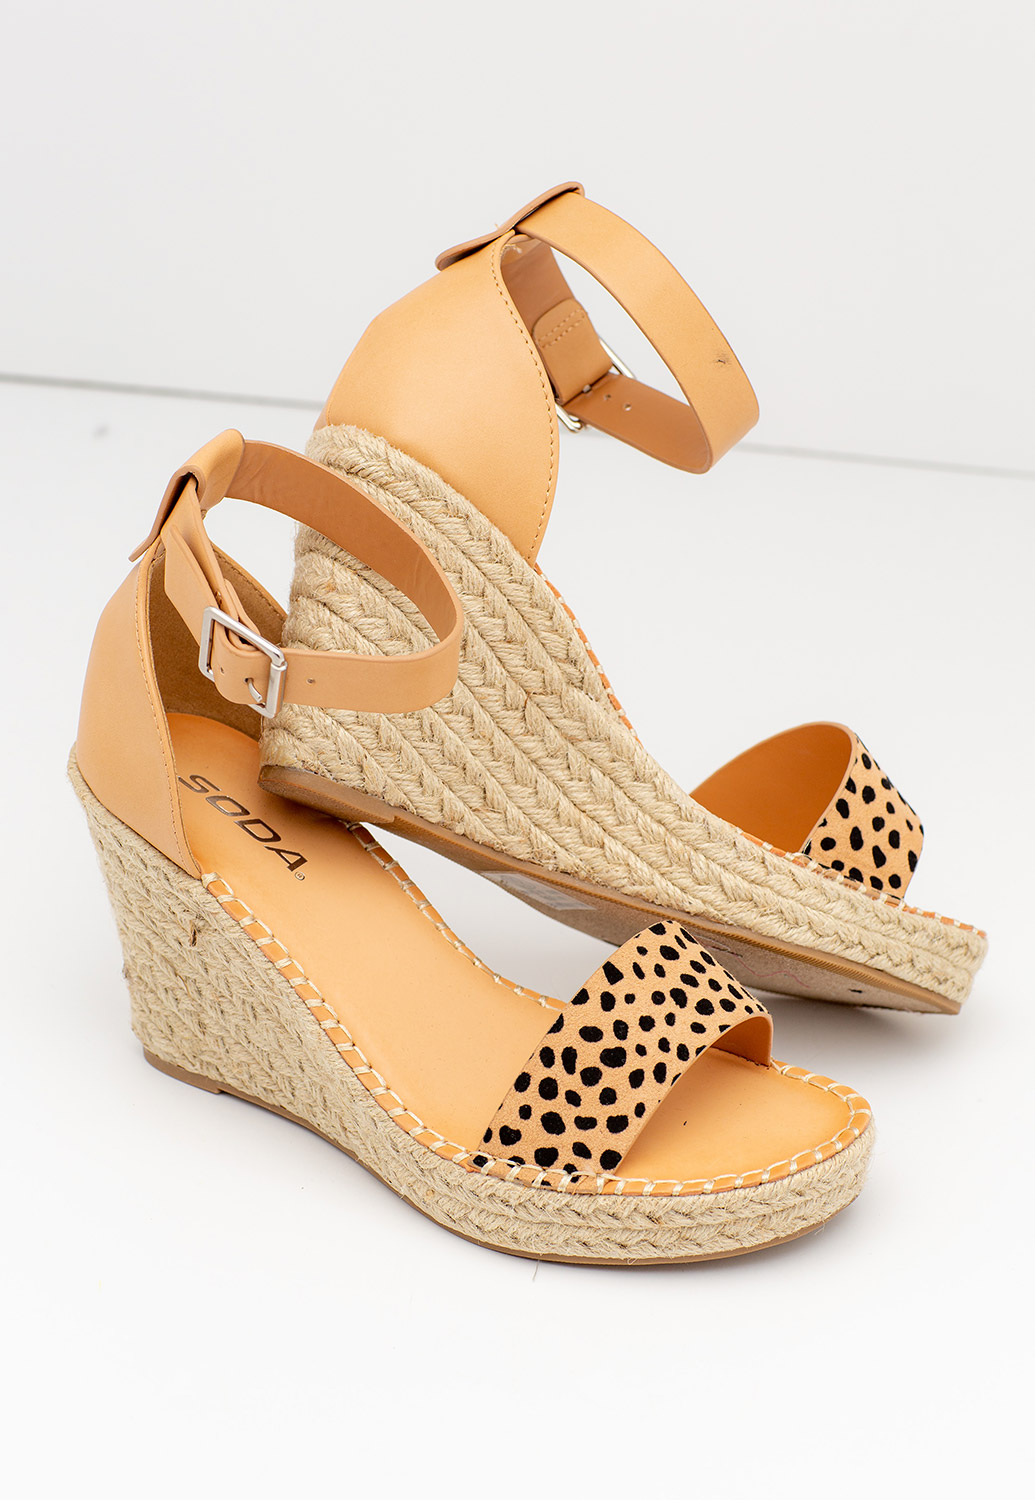 Summer Wedge Sandals